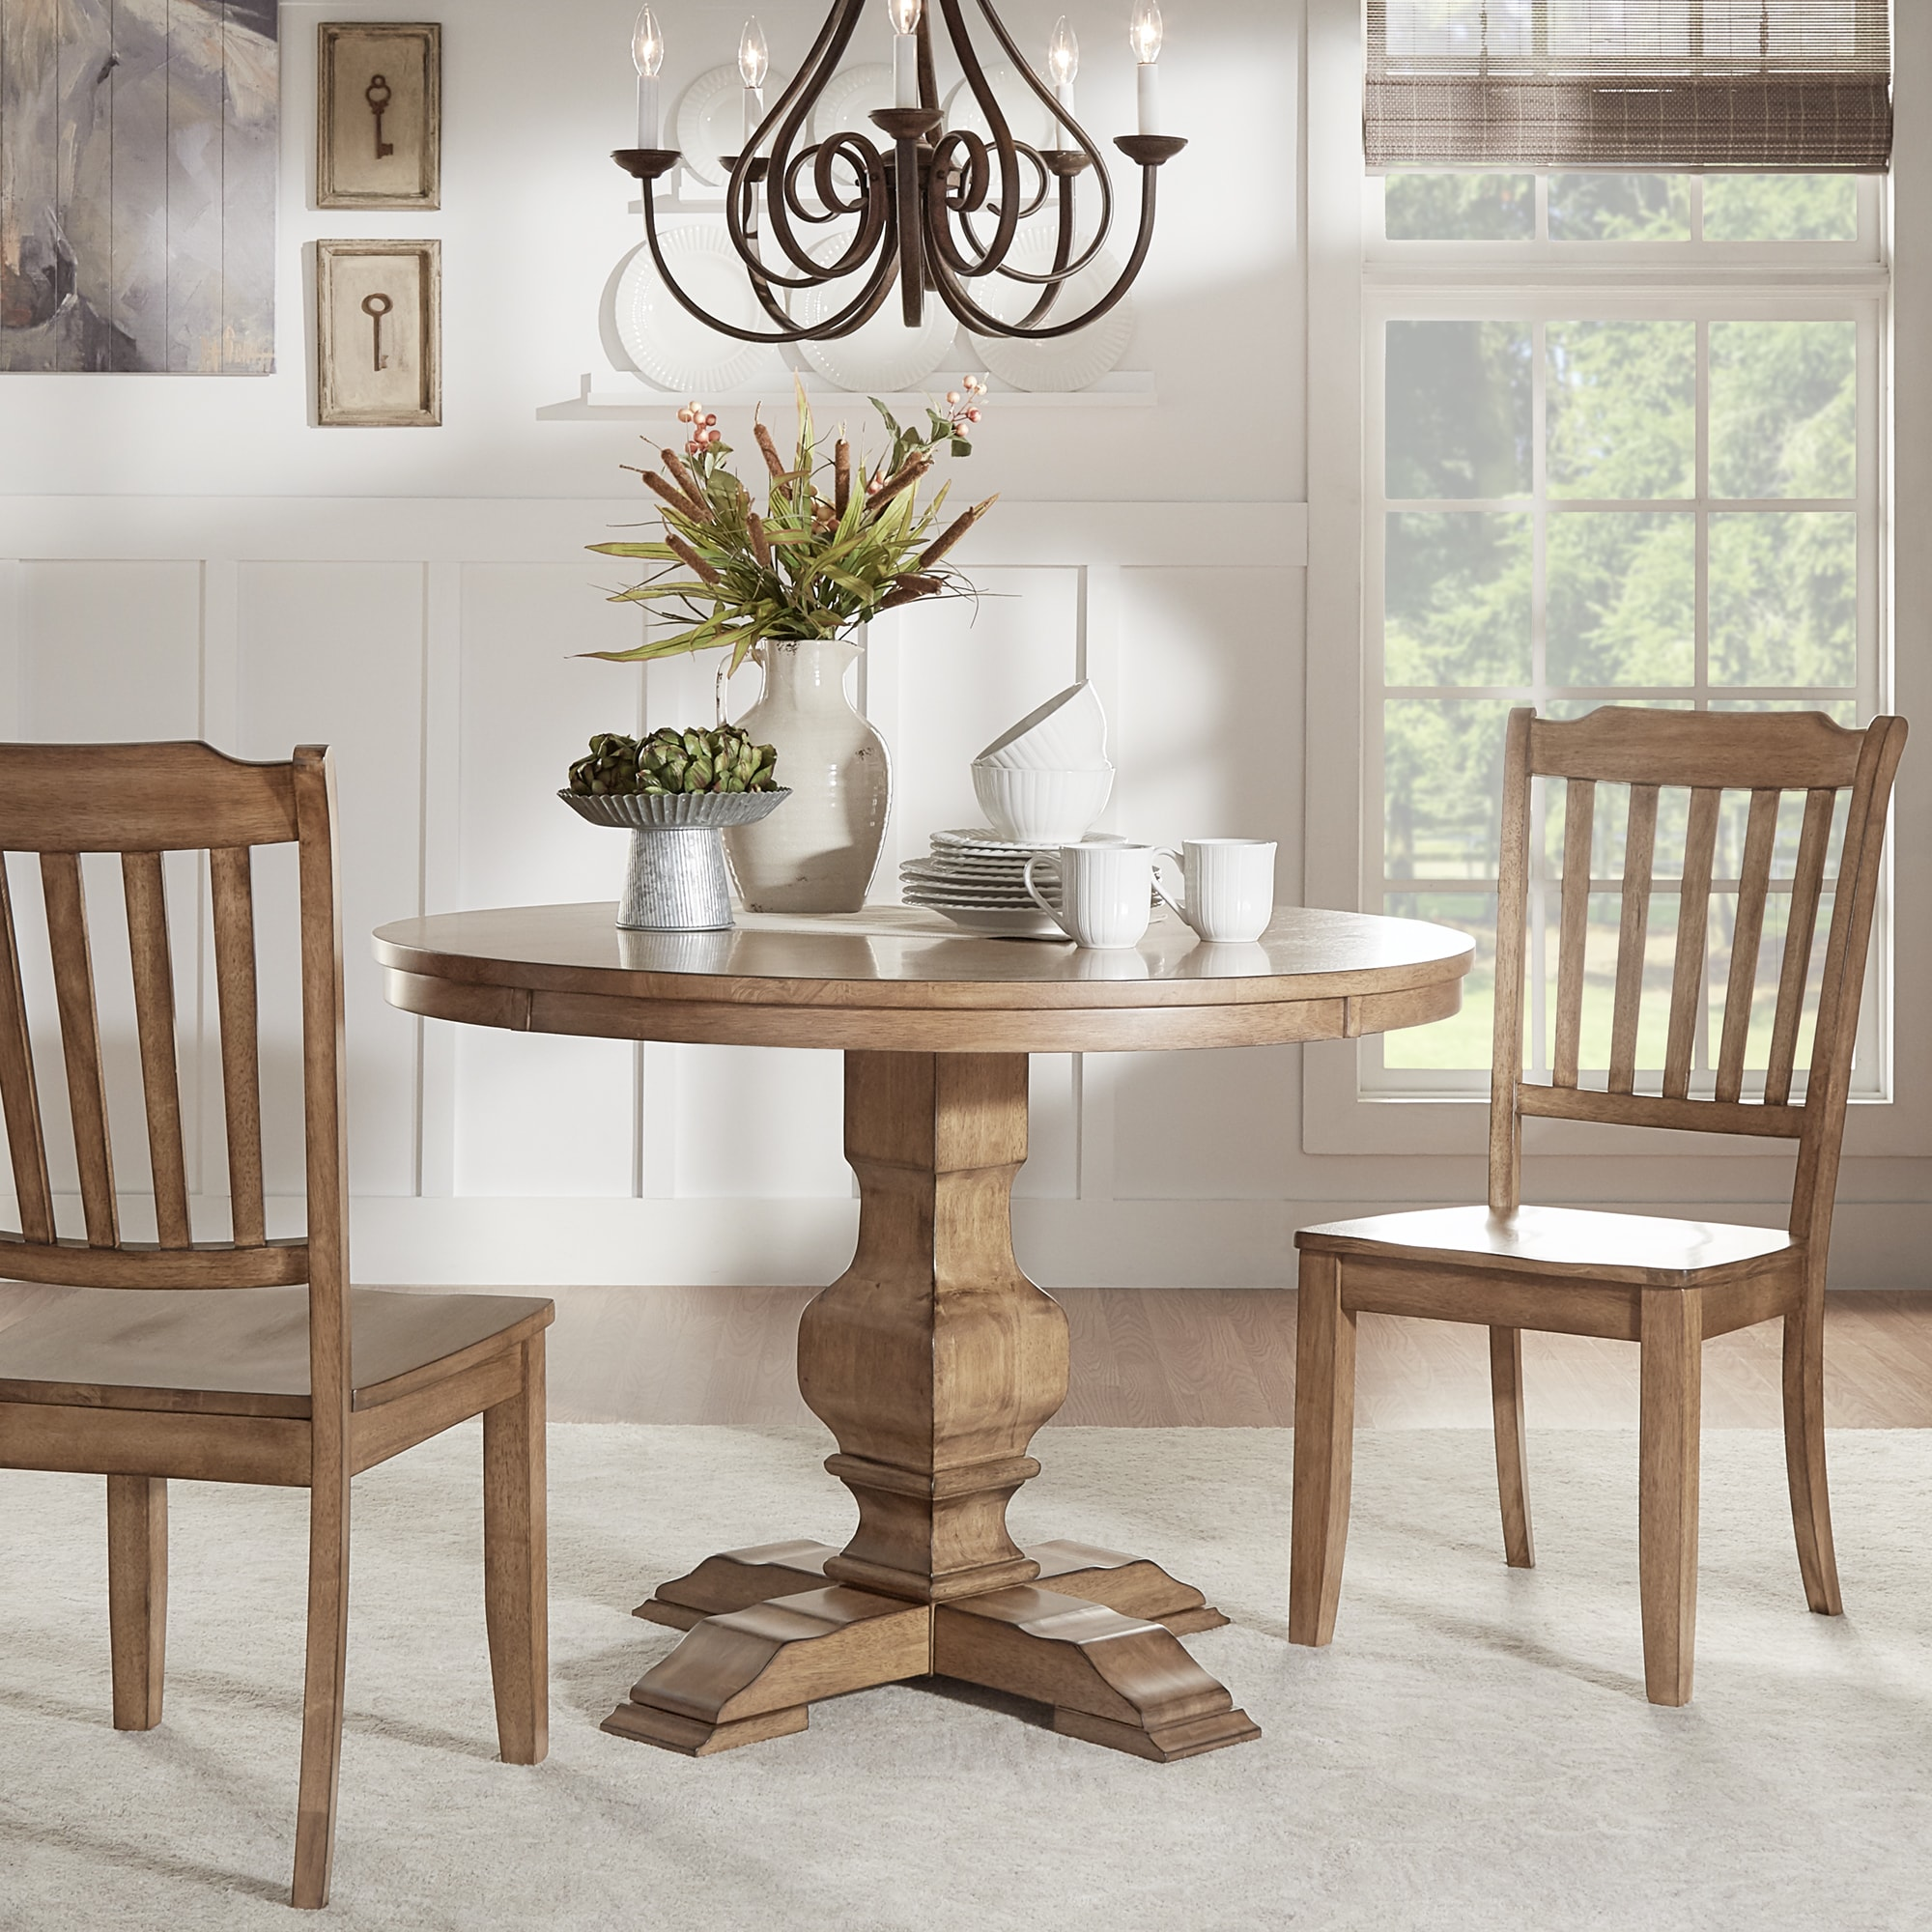 Eleanor Two Tone Round Solid Wood Top Dining Table By Inspire Q Clic